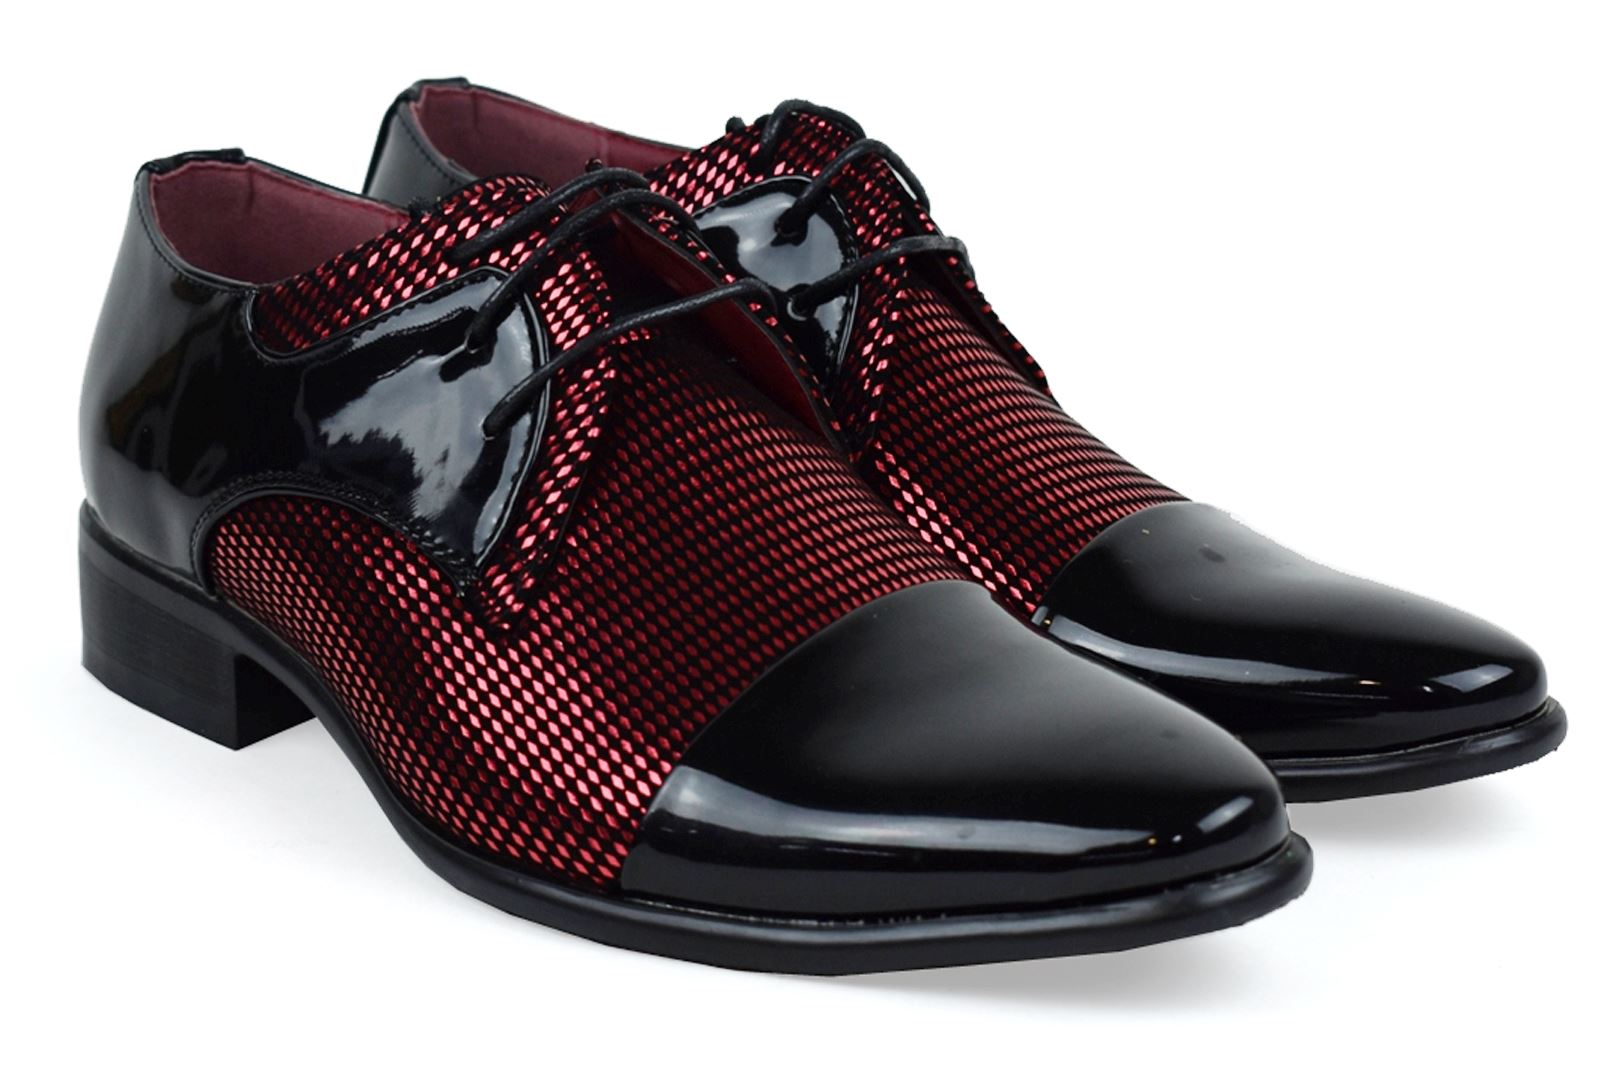 Mens-UK-Style-Leather-Lining-Formal-Office-Wedding-Smart-Work-Brogue-Shoes thumbnail 82